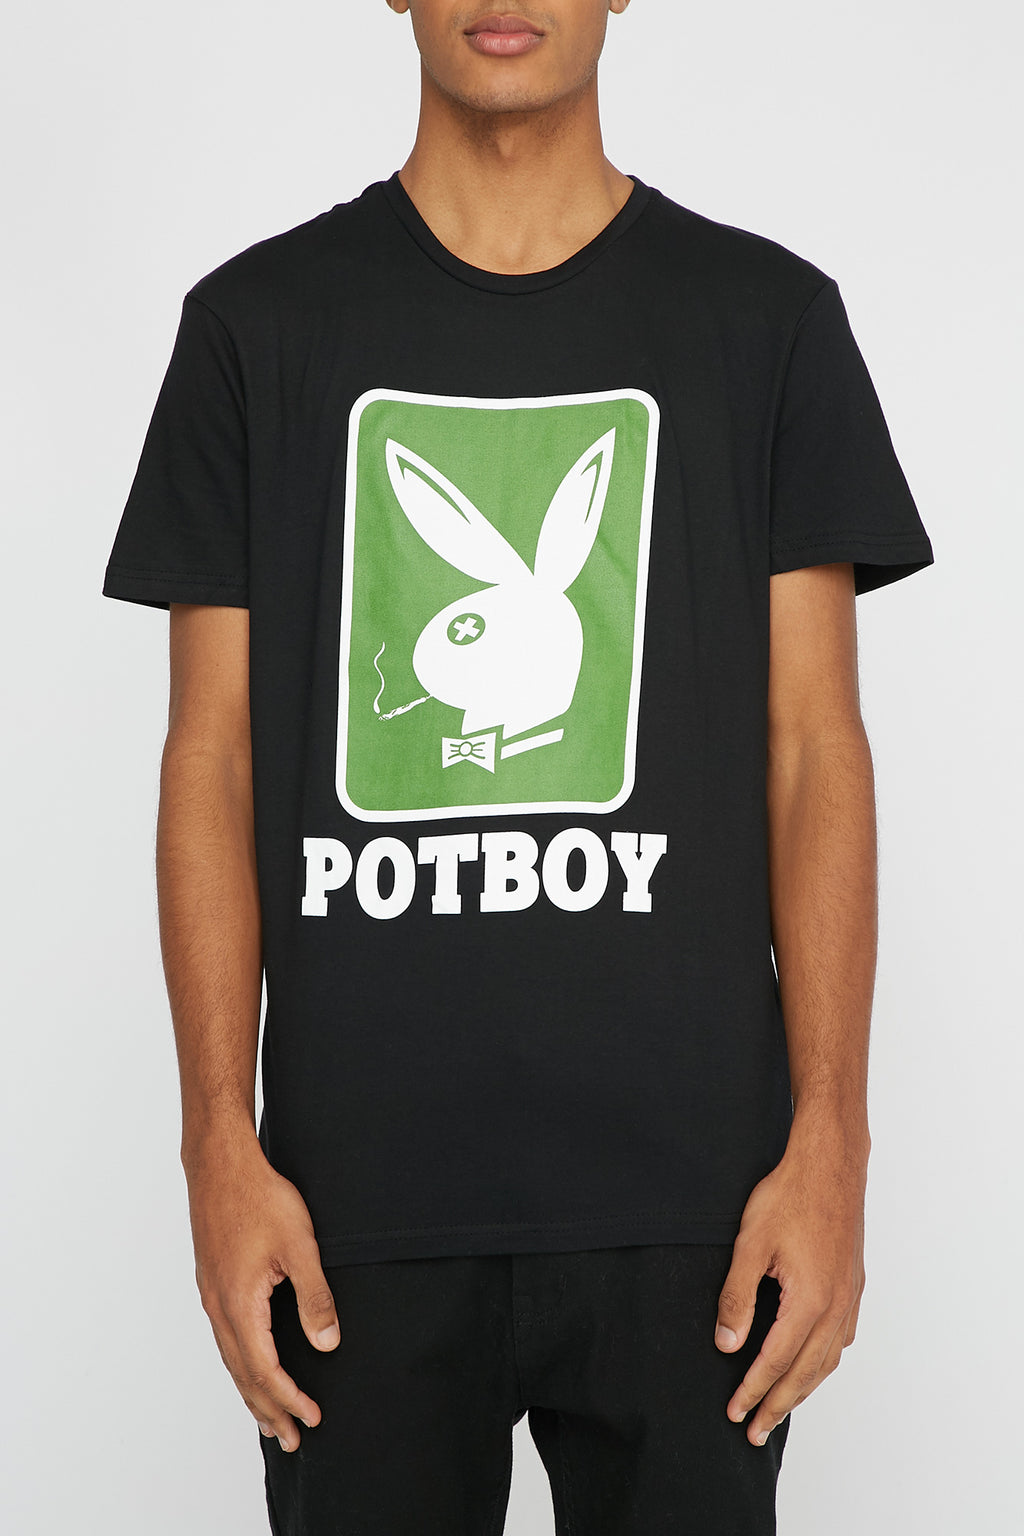 West49 Mens Potboy T-Shirt